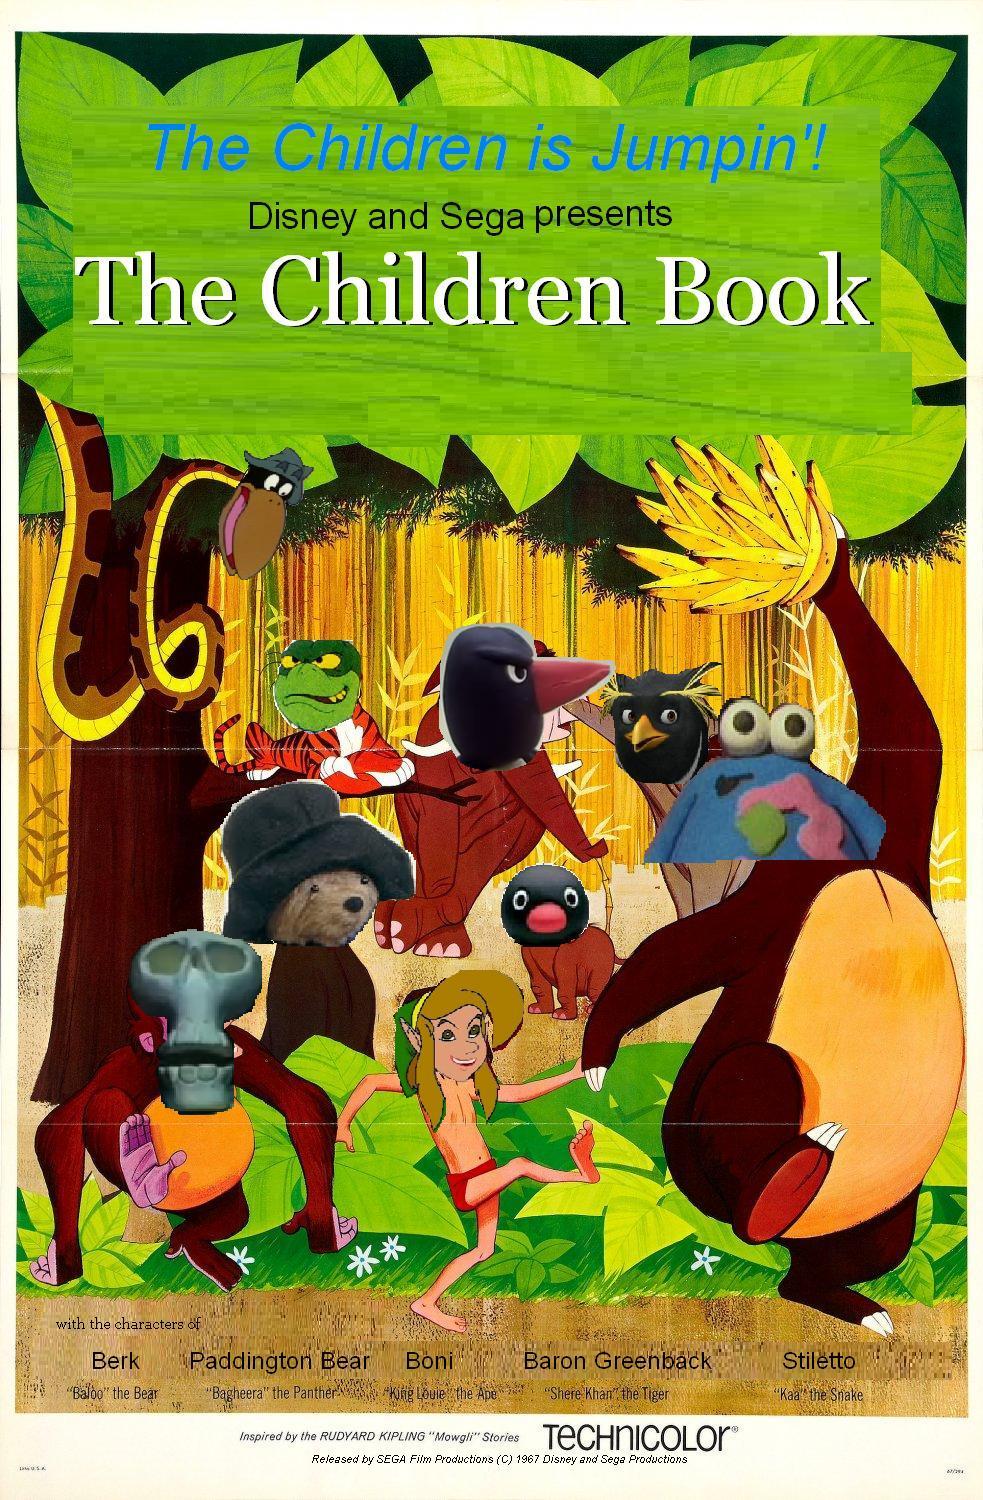 The Children Book